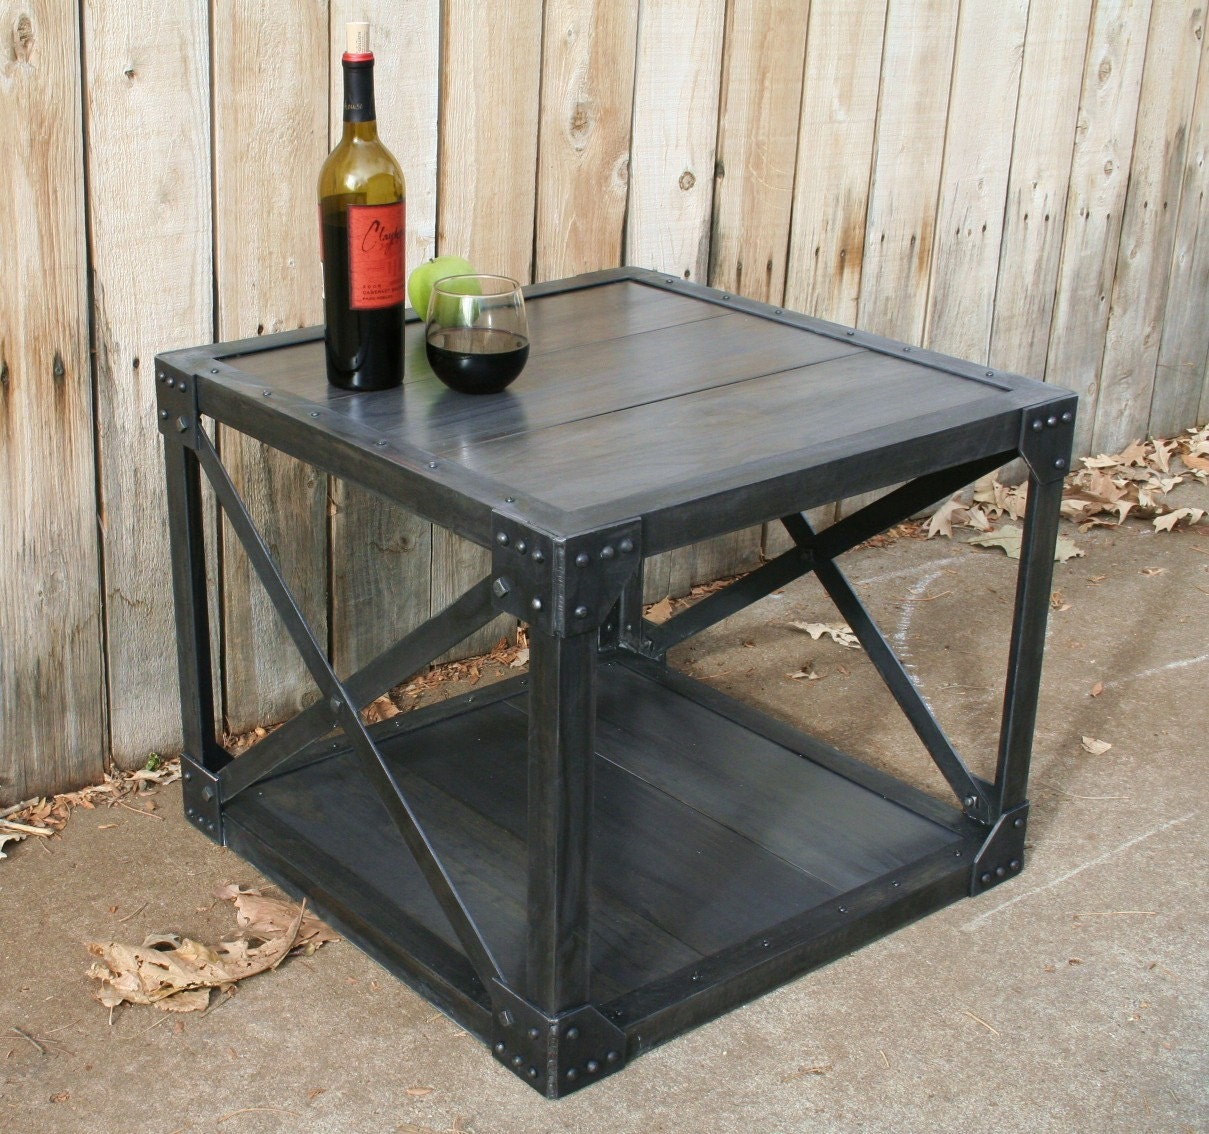 Industrial Coffee Table Images: Vintage Handmade Wood & Metal Industrial Coffee Table Urban